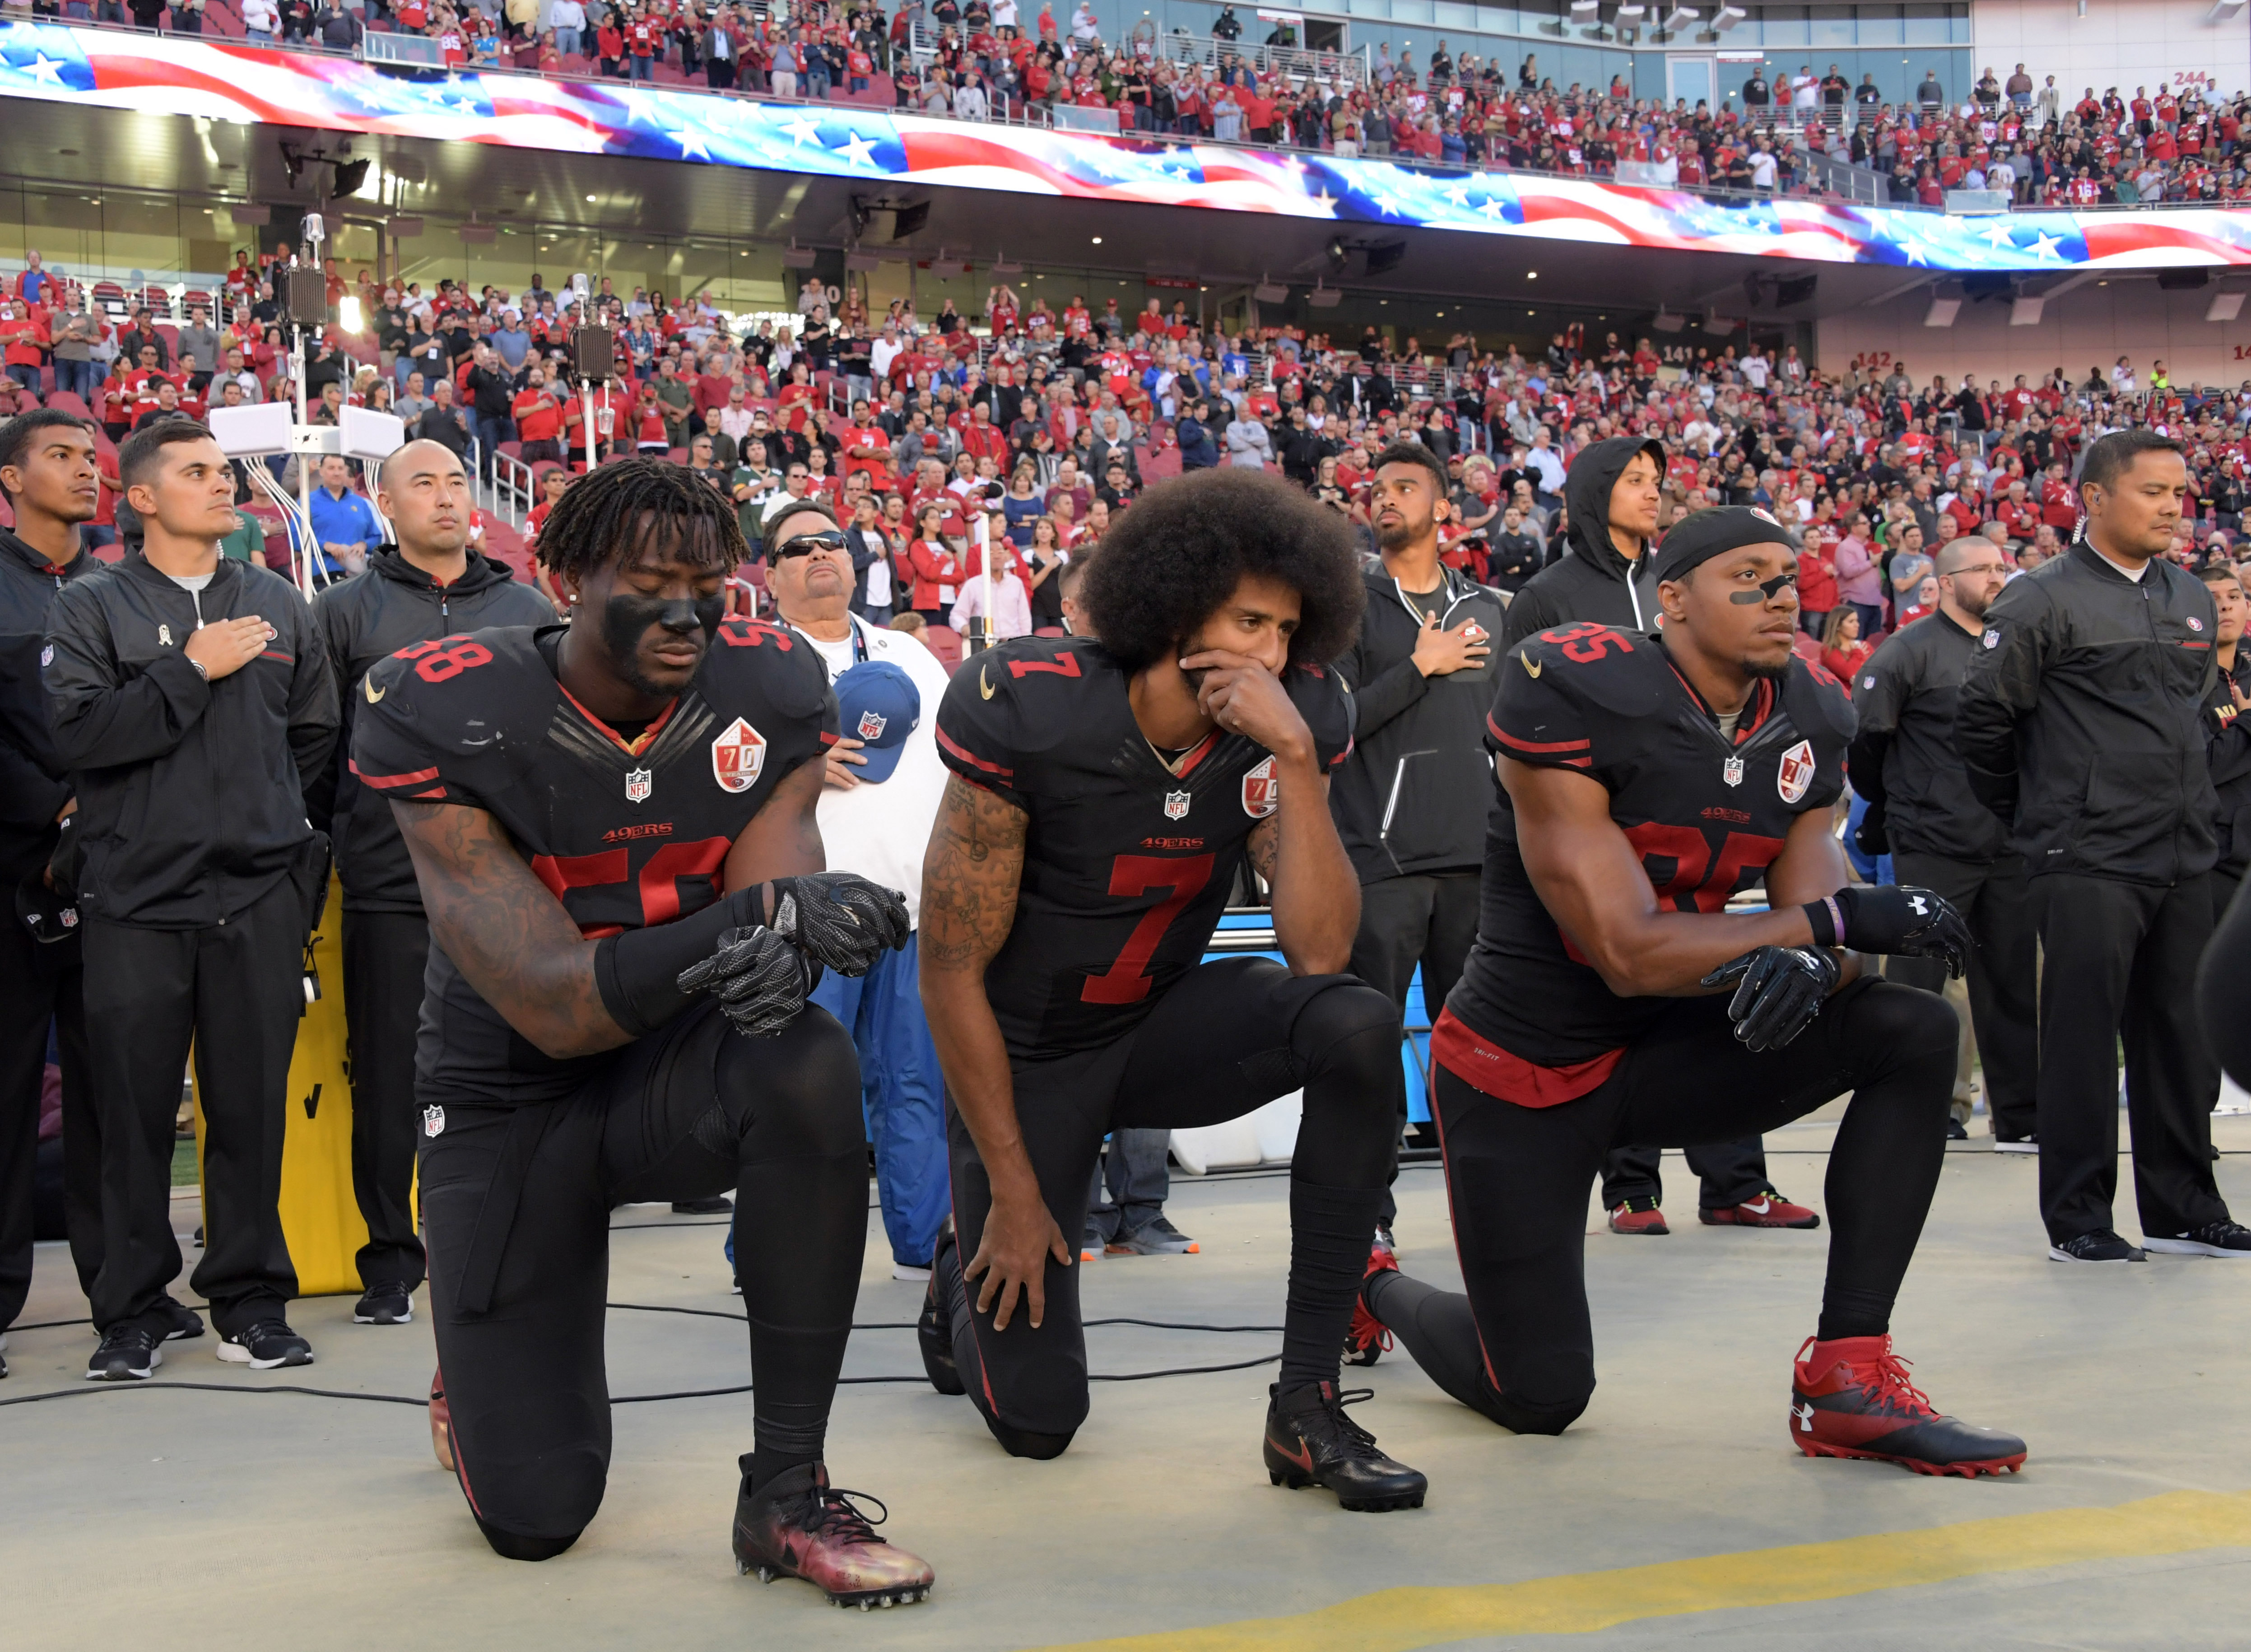 Oct 6, 2016; Santa Clara, CA, USA; San Francisco 49ers outside linebacker Eli Harold (58), quarterback Colin Kaepernick (7) and free safety Eric Reid (35) kneel in protest during the playing of the national anthem before a NFL game against the Arizona Cardinals at Levi's Stadium. Mandatory Credit: Kirby Lee-USA TODAY Sports/ Reuters